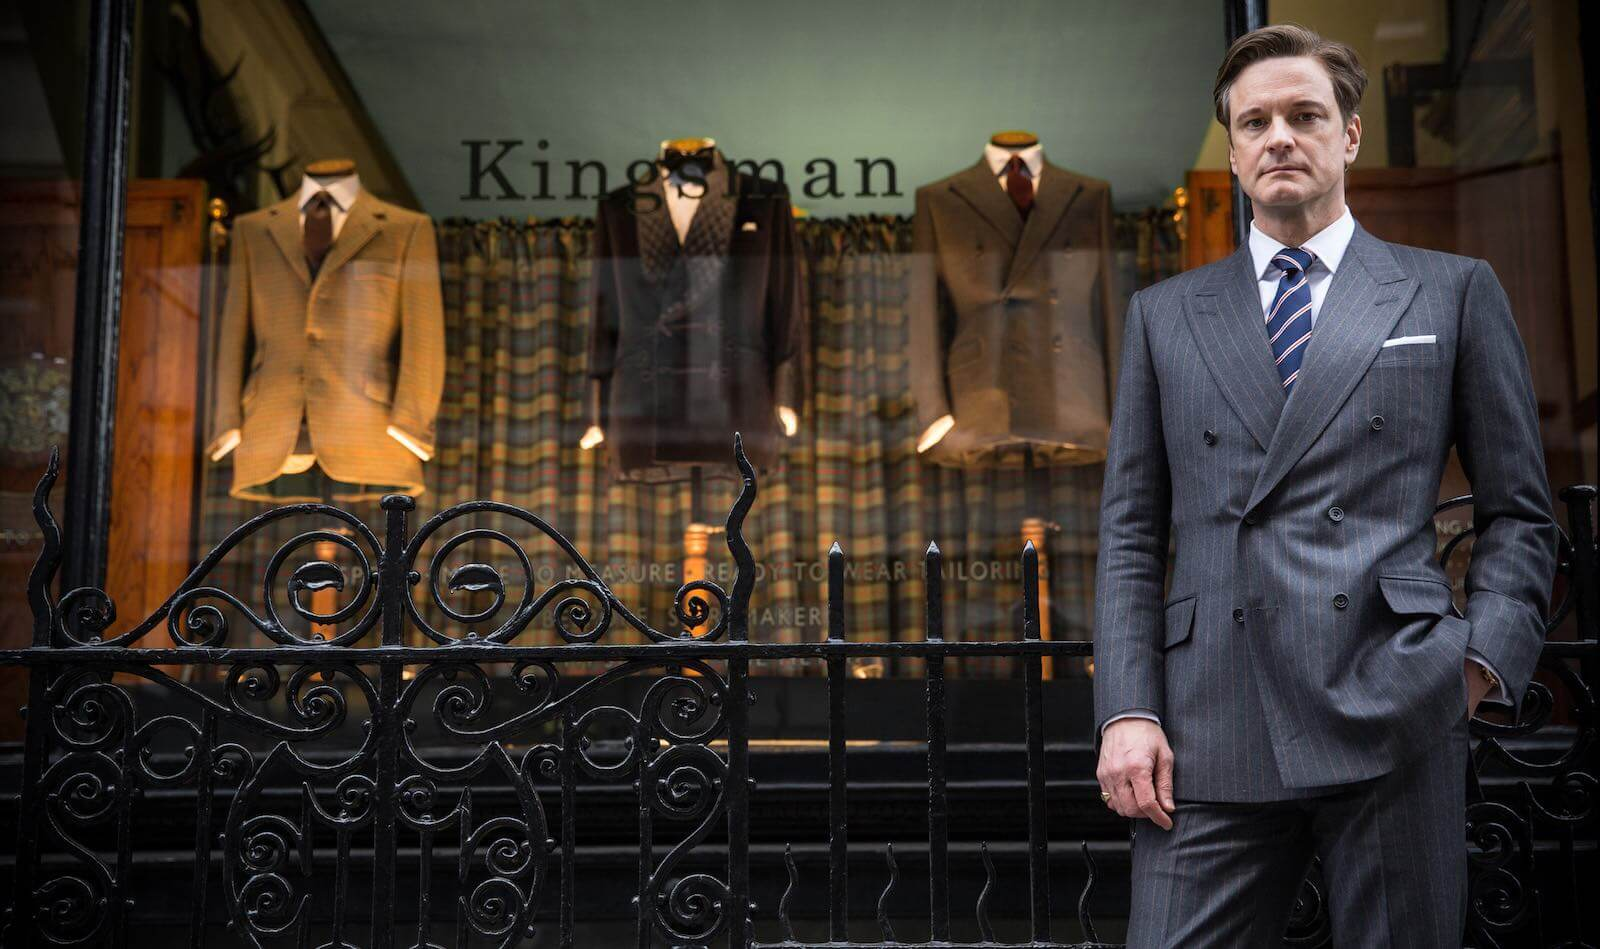 How to Write and Shoot Action Scenes Like Kingsman - Colin Firth-min